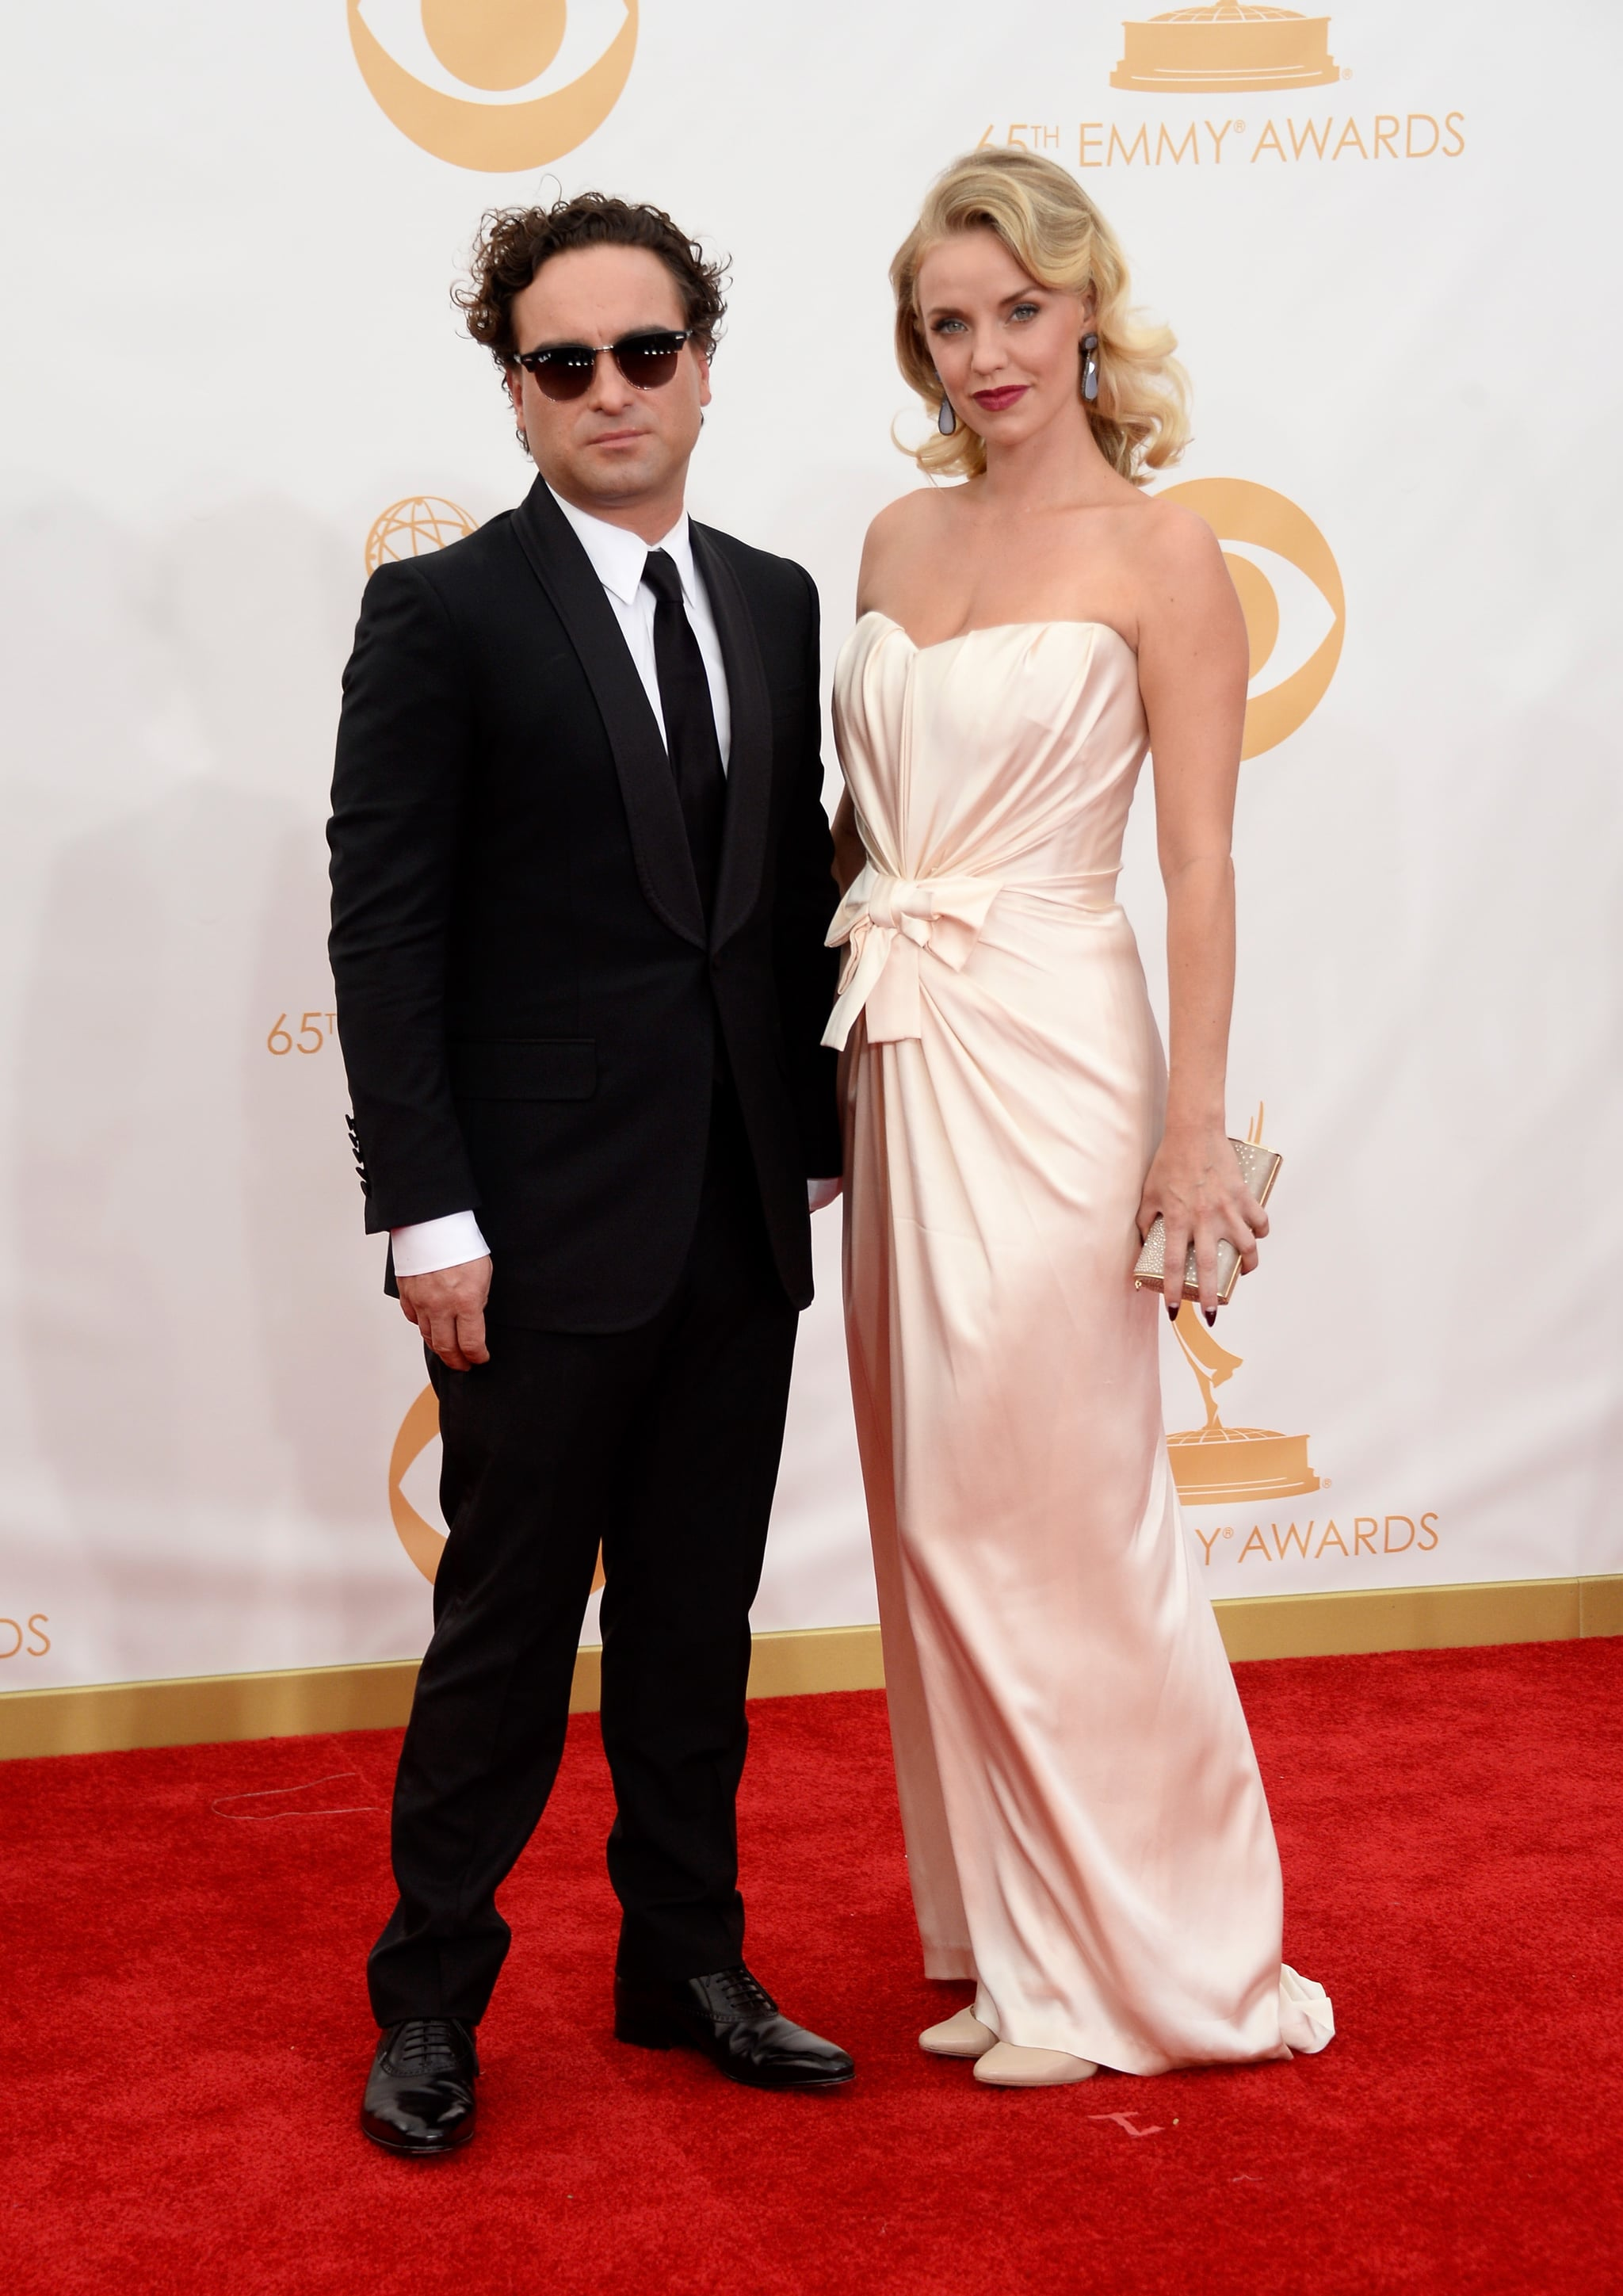 Johnny Galecki and Kelli Garner attended the Emmys.